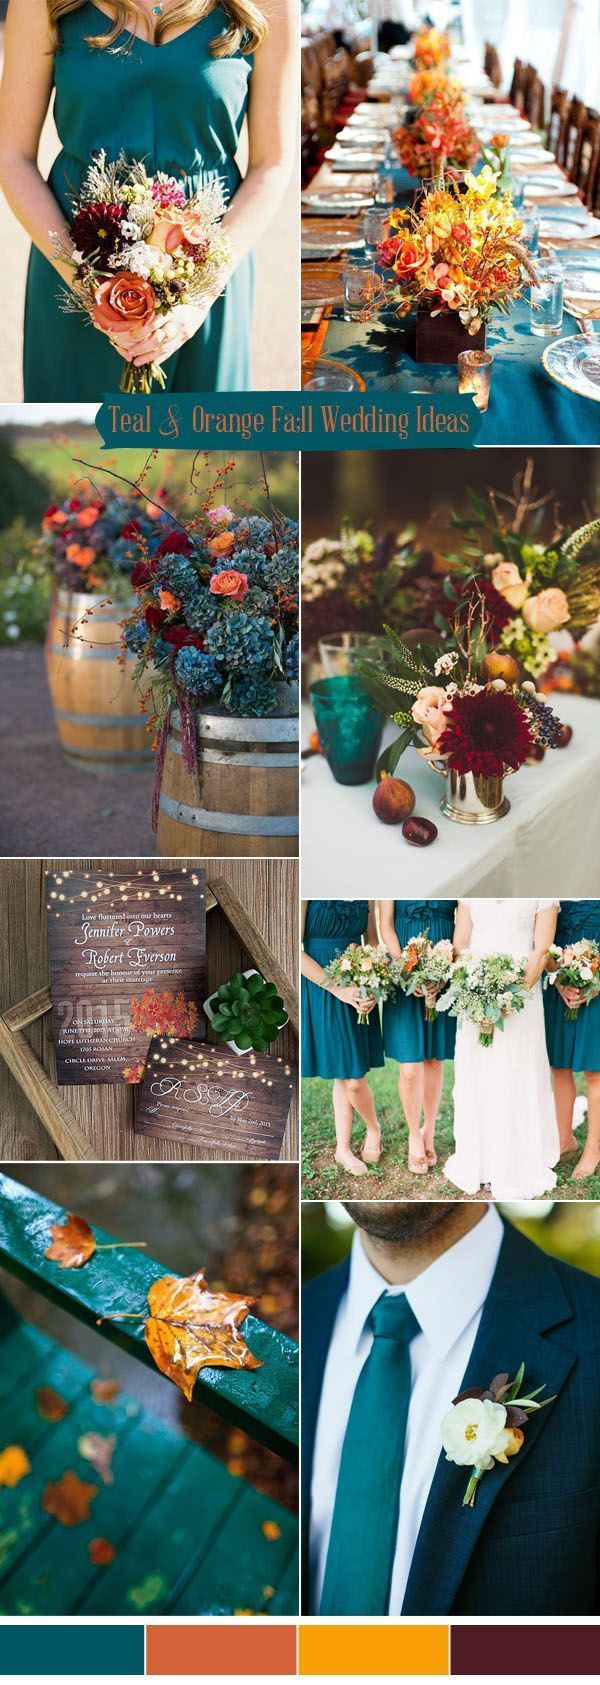 romantic teal blue and orange rustic fall wedding colors for 2017 trends